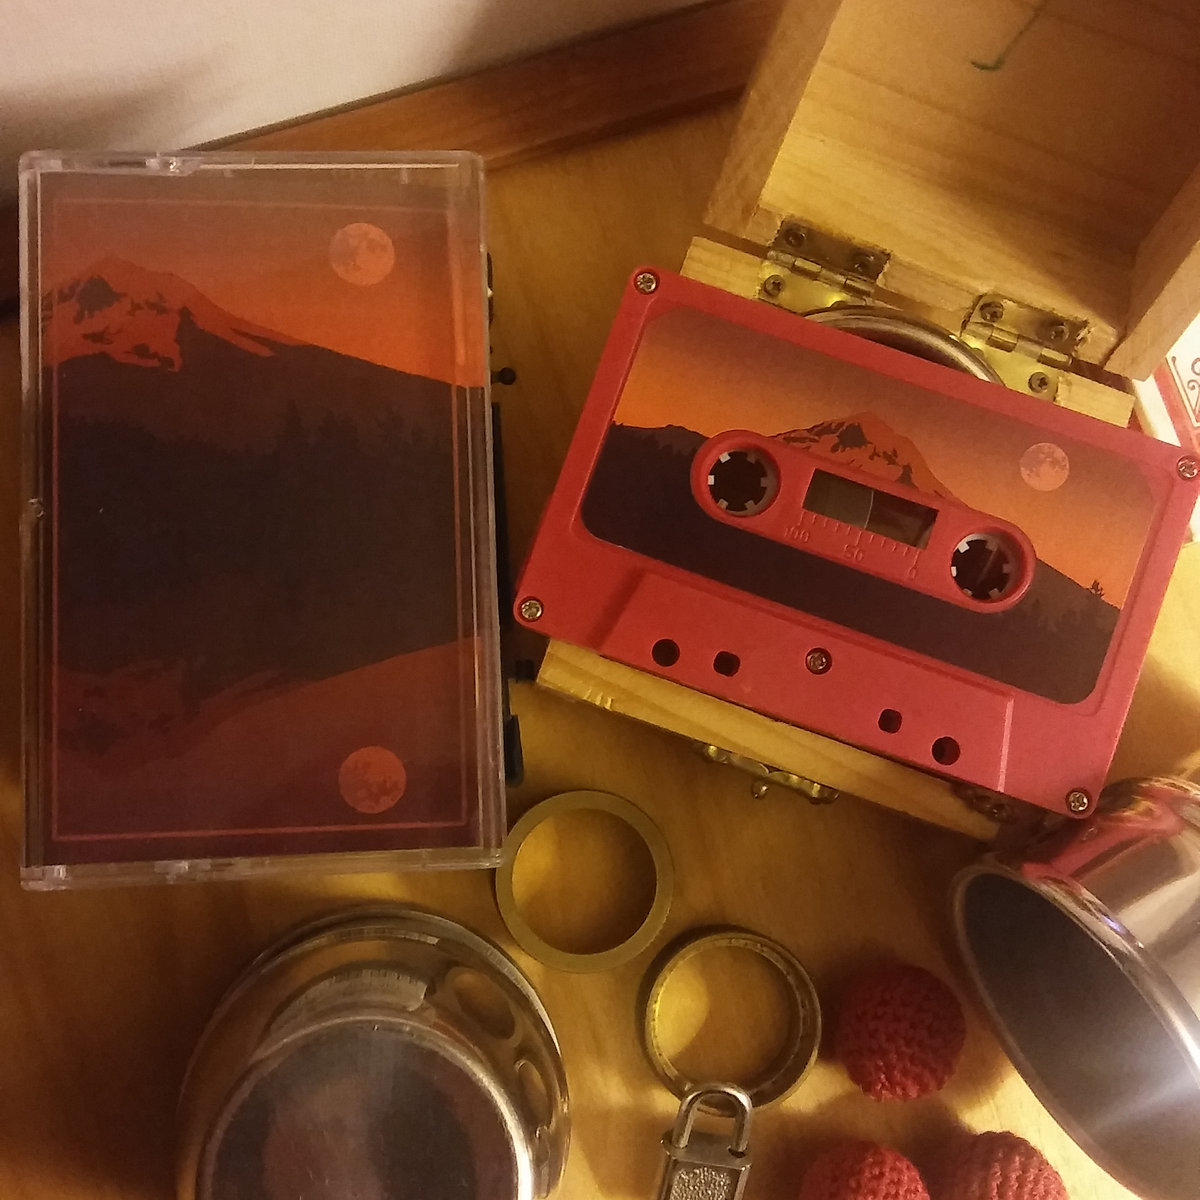 The cassette edition of goodbye to all that.